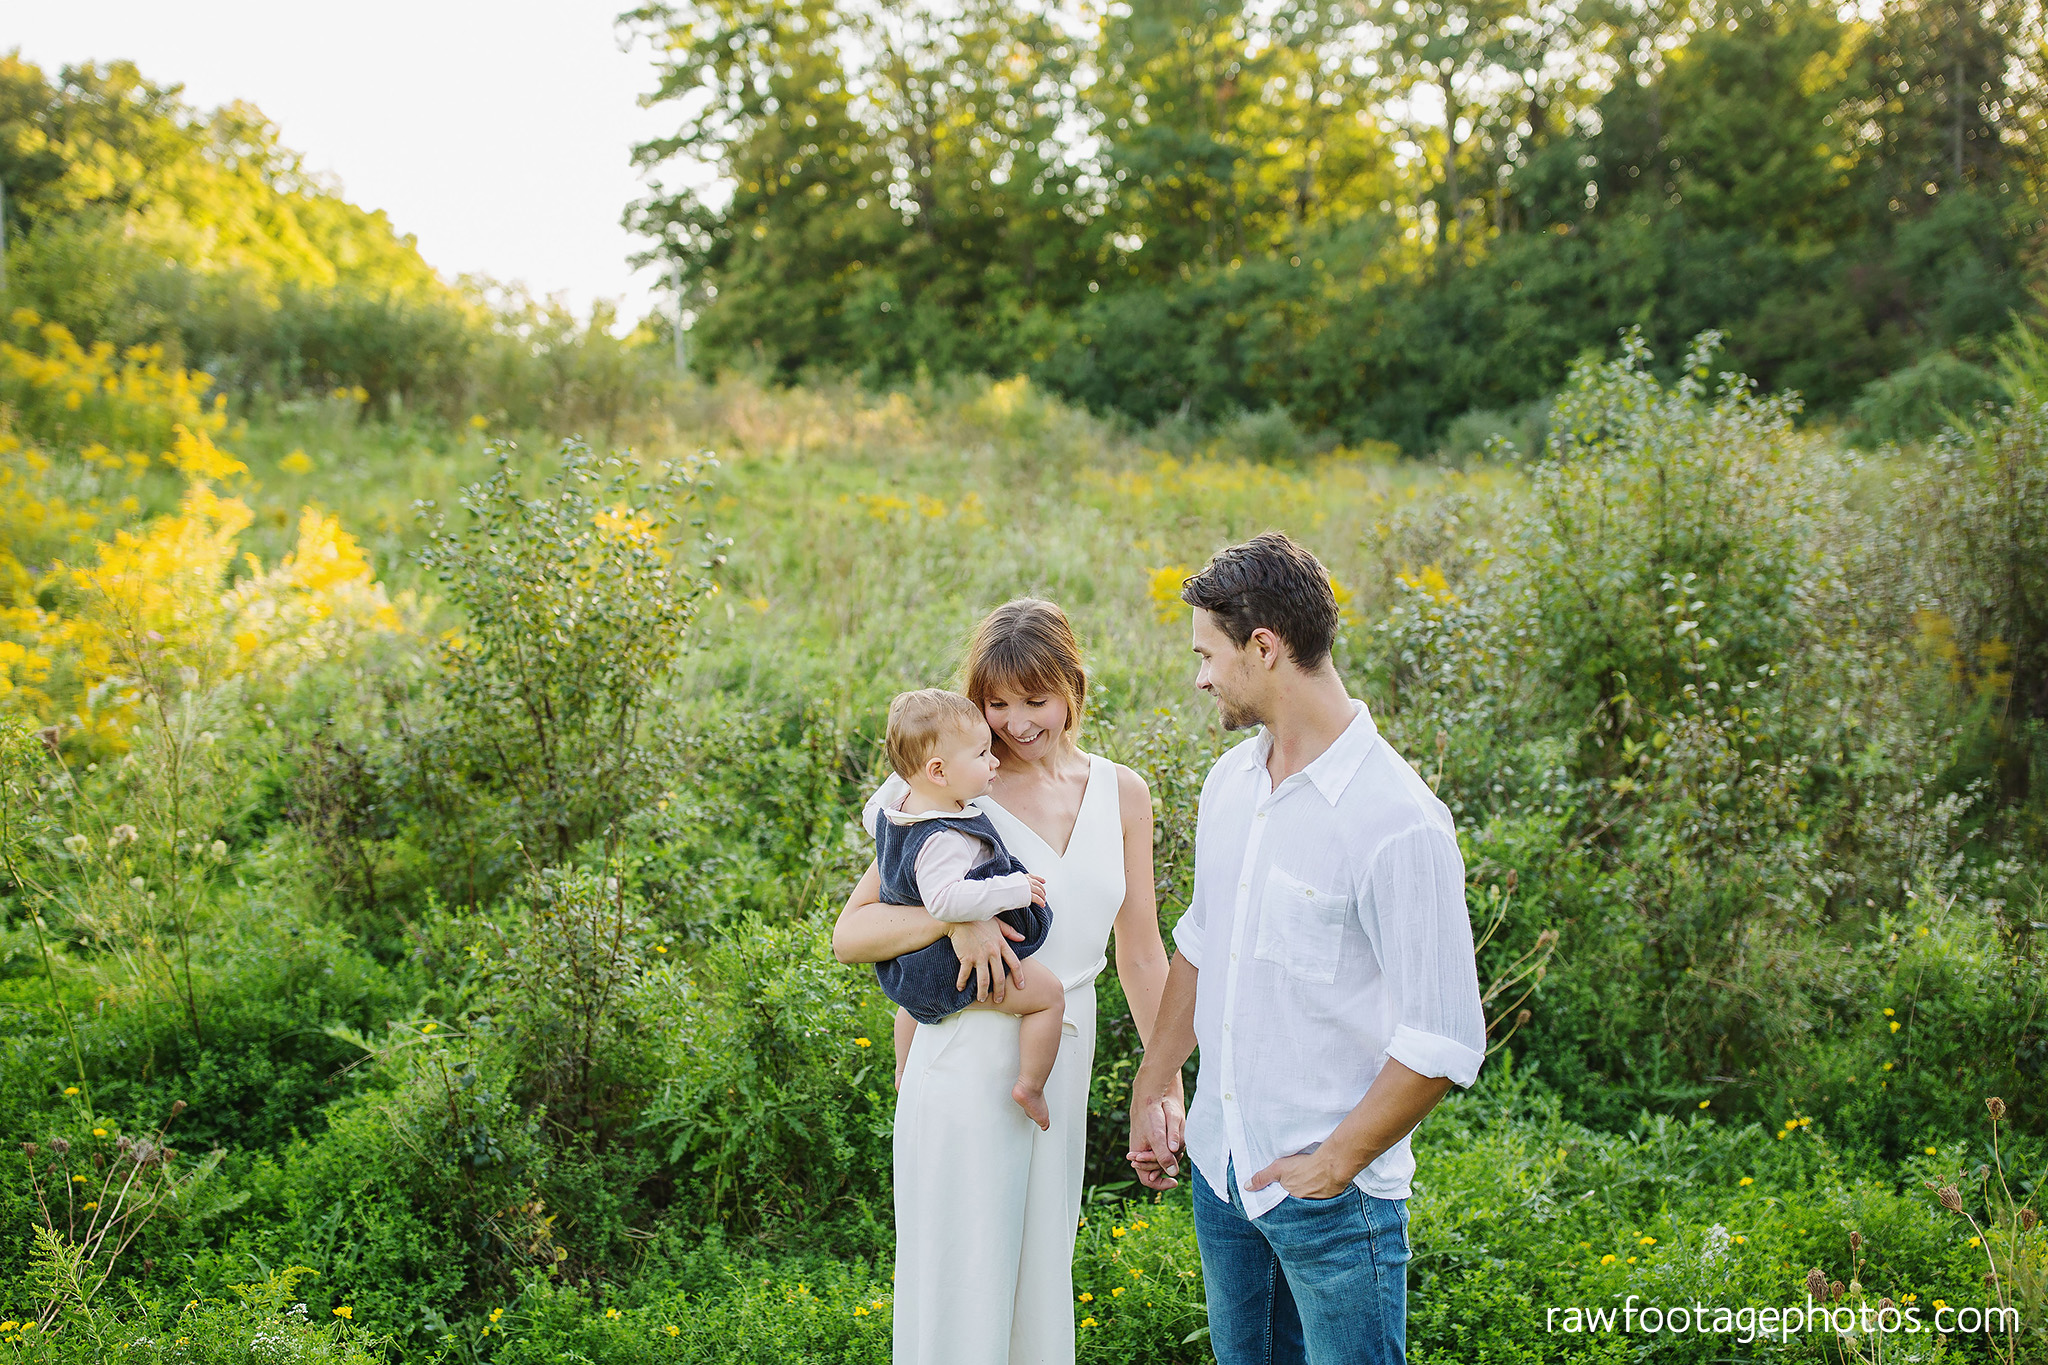 London_Ontario_Family_photographer-Fall_Minis-Woods-Forest-Nature-Candid-Lifestyle-Raw_Footage_Photography046.jpg